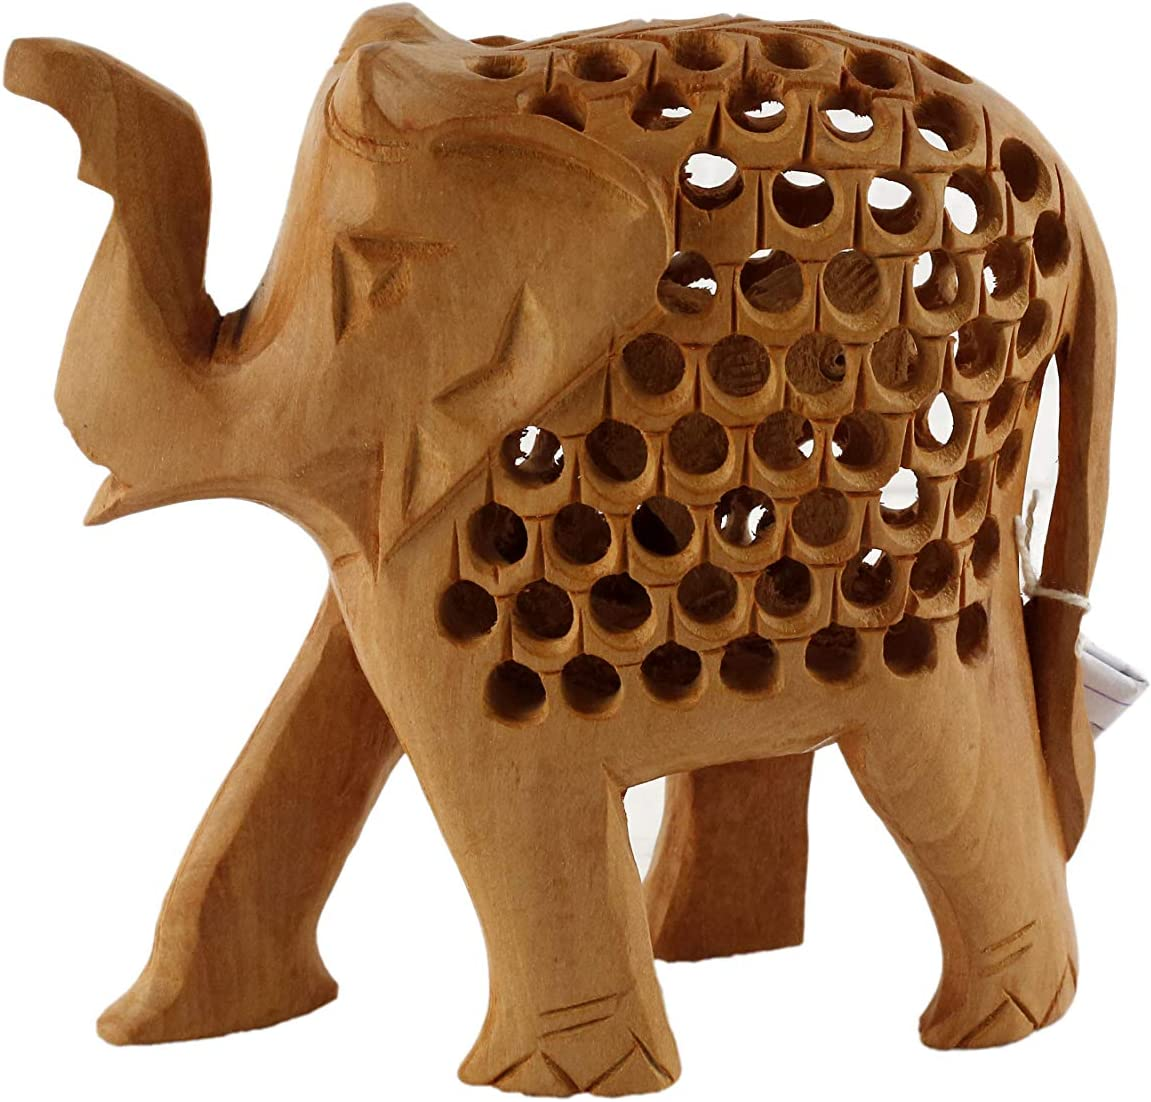 Amazon Com Cwl Elephant With Baby Inside Hand Carved Statue Home Decor Clearance Mom Birthday Gifts From Daughter For Living Room Wood Carved Animal Sculptures Statues And Figurines Collectibles Good Luck Charm Home Kitchen